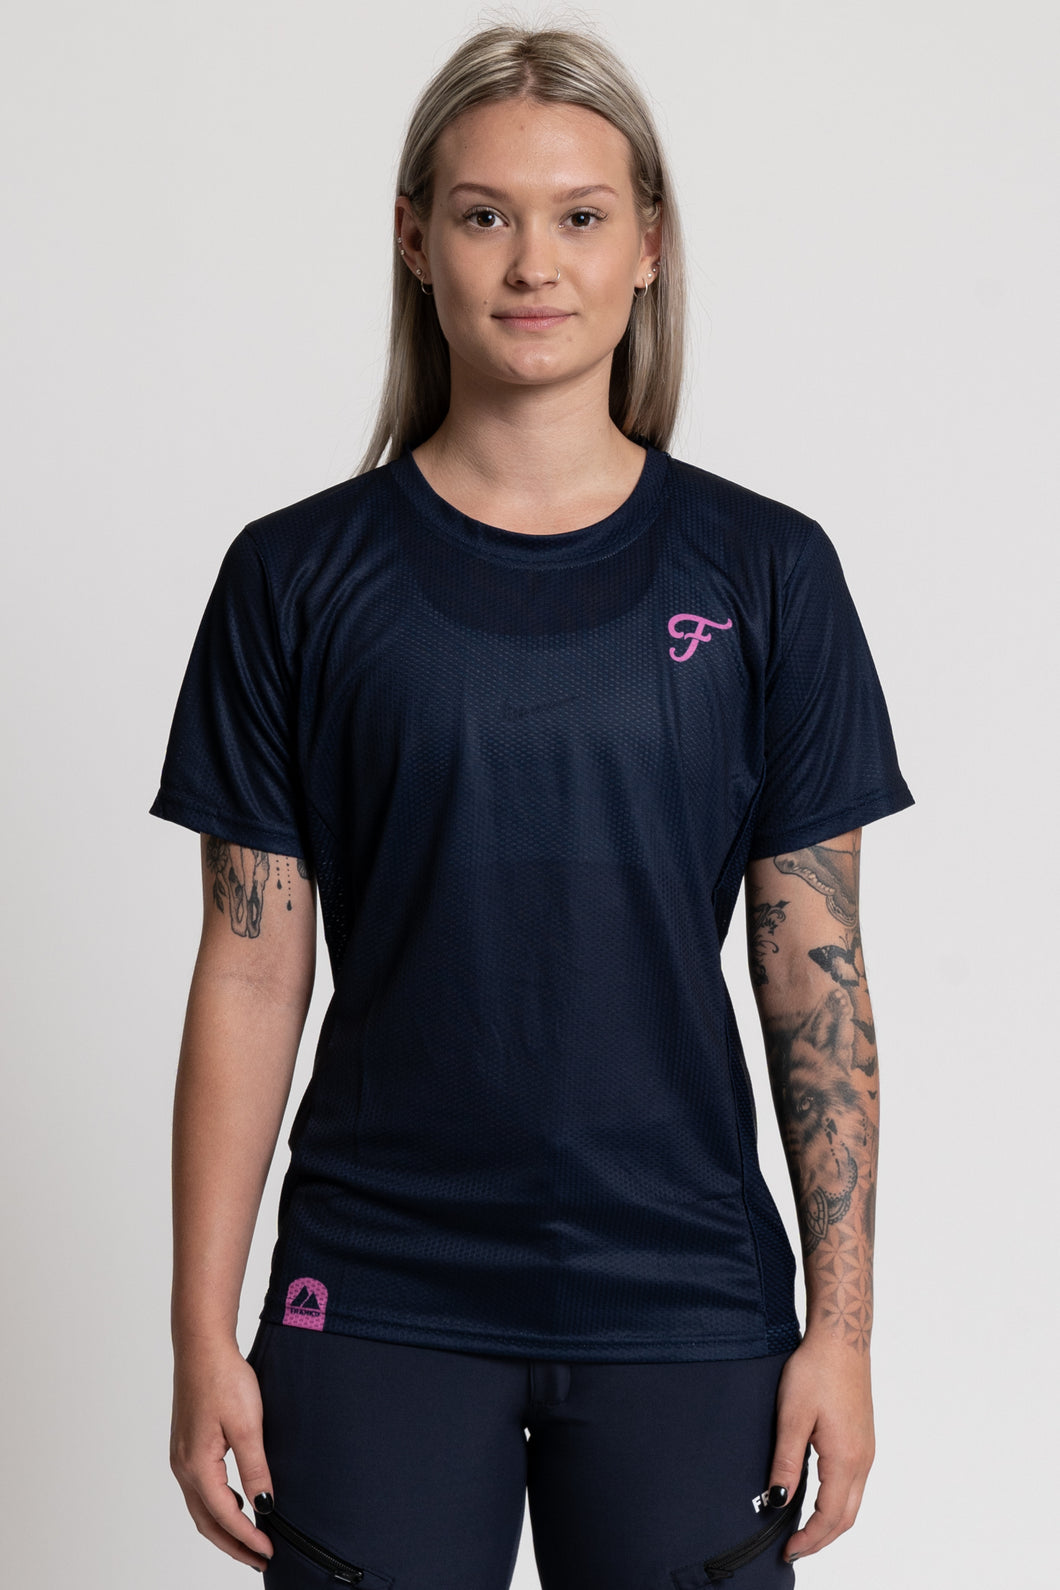 The Lettermark Jersey Navy - AirTech